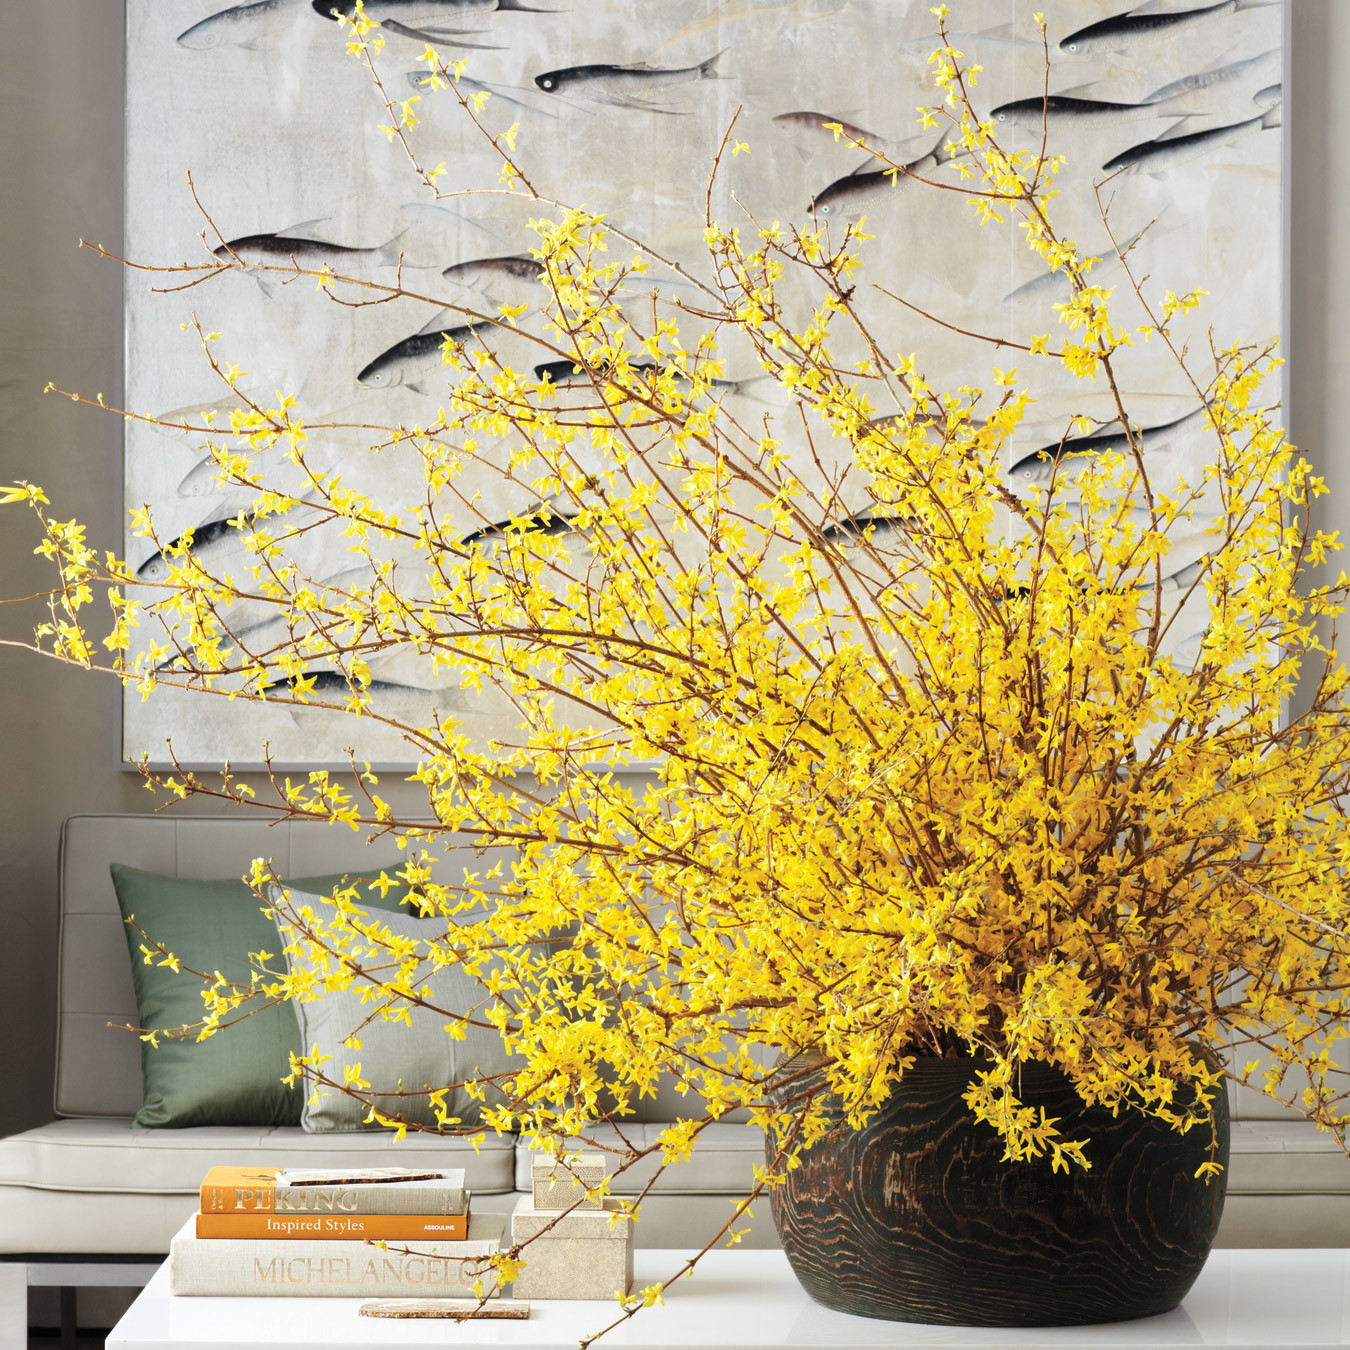 Home Design Forsythia Martha Stewart : forsythia lounge mld107426sq from www.marthastewart.com size 1350 x 1350 jpeg 839kB